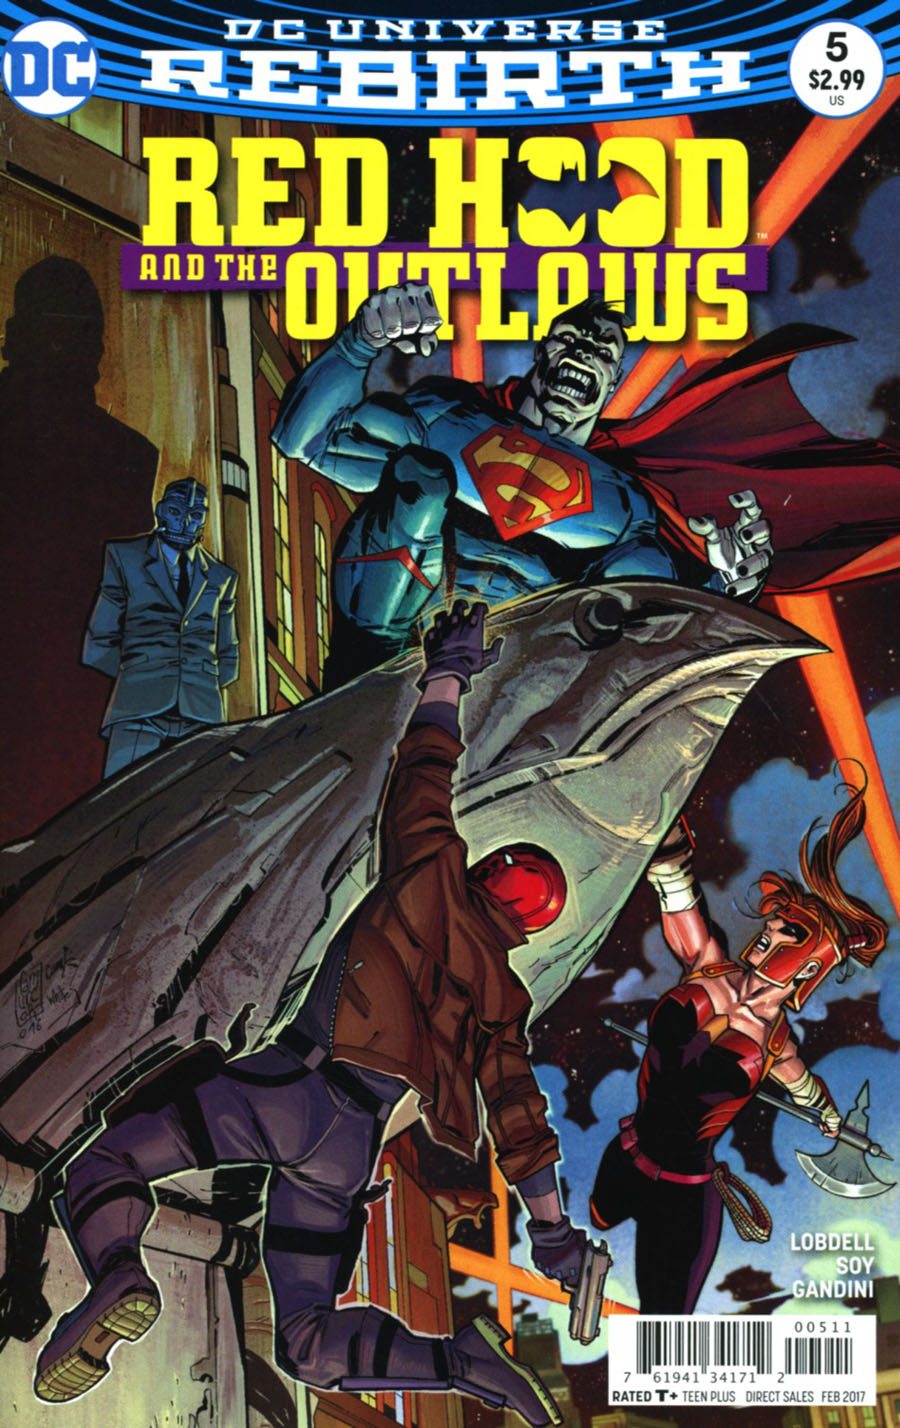 Red Hood And The Outlaws Vol 2 #5 Cover A Regular Giuseppe Camuncoli & Cam Smith Cover